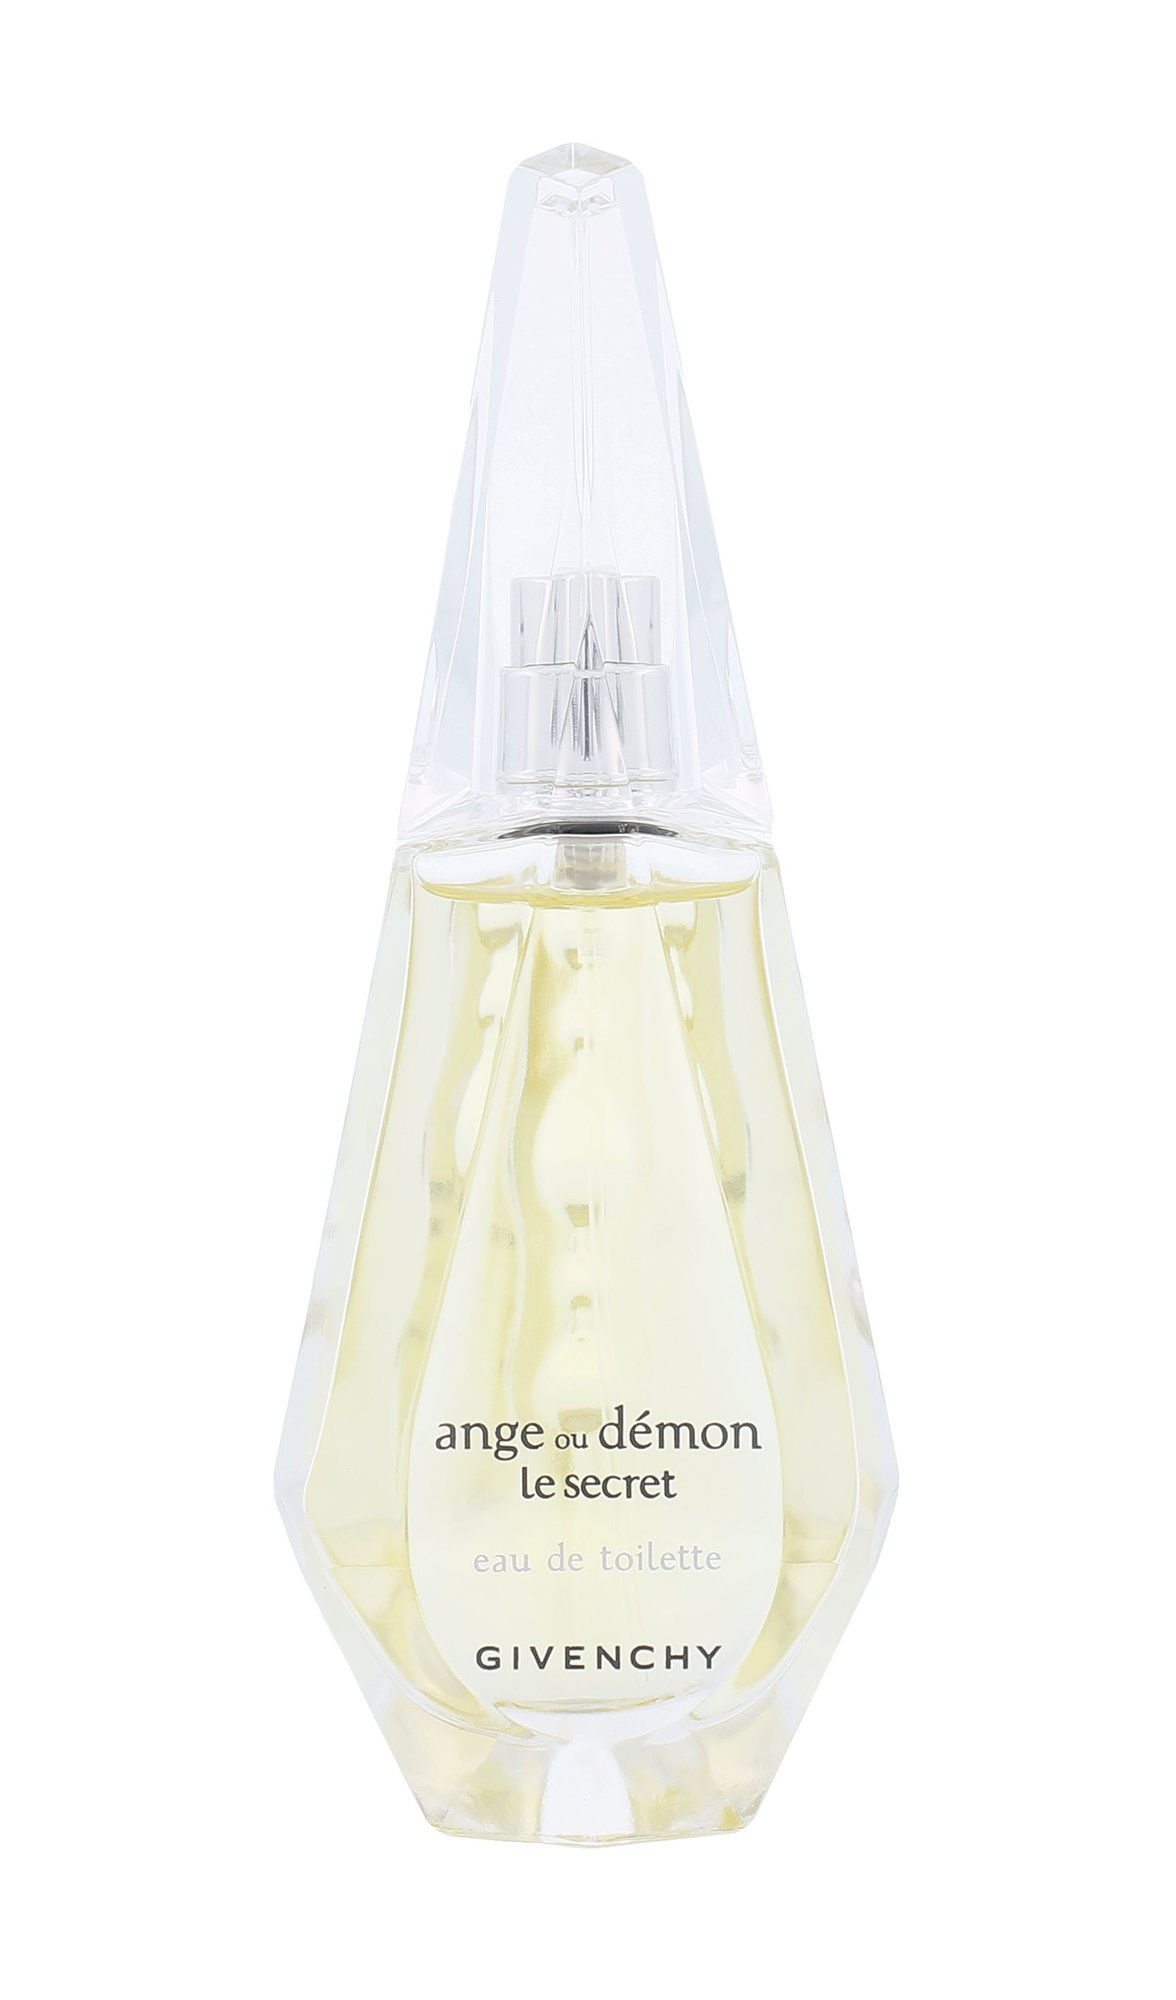 Givenchy Ange ou Demon (Etrange) Le Secret EDT 50ml